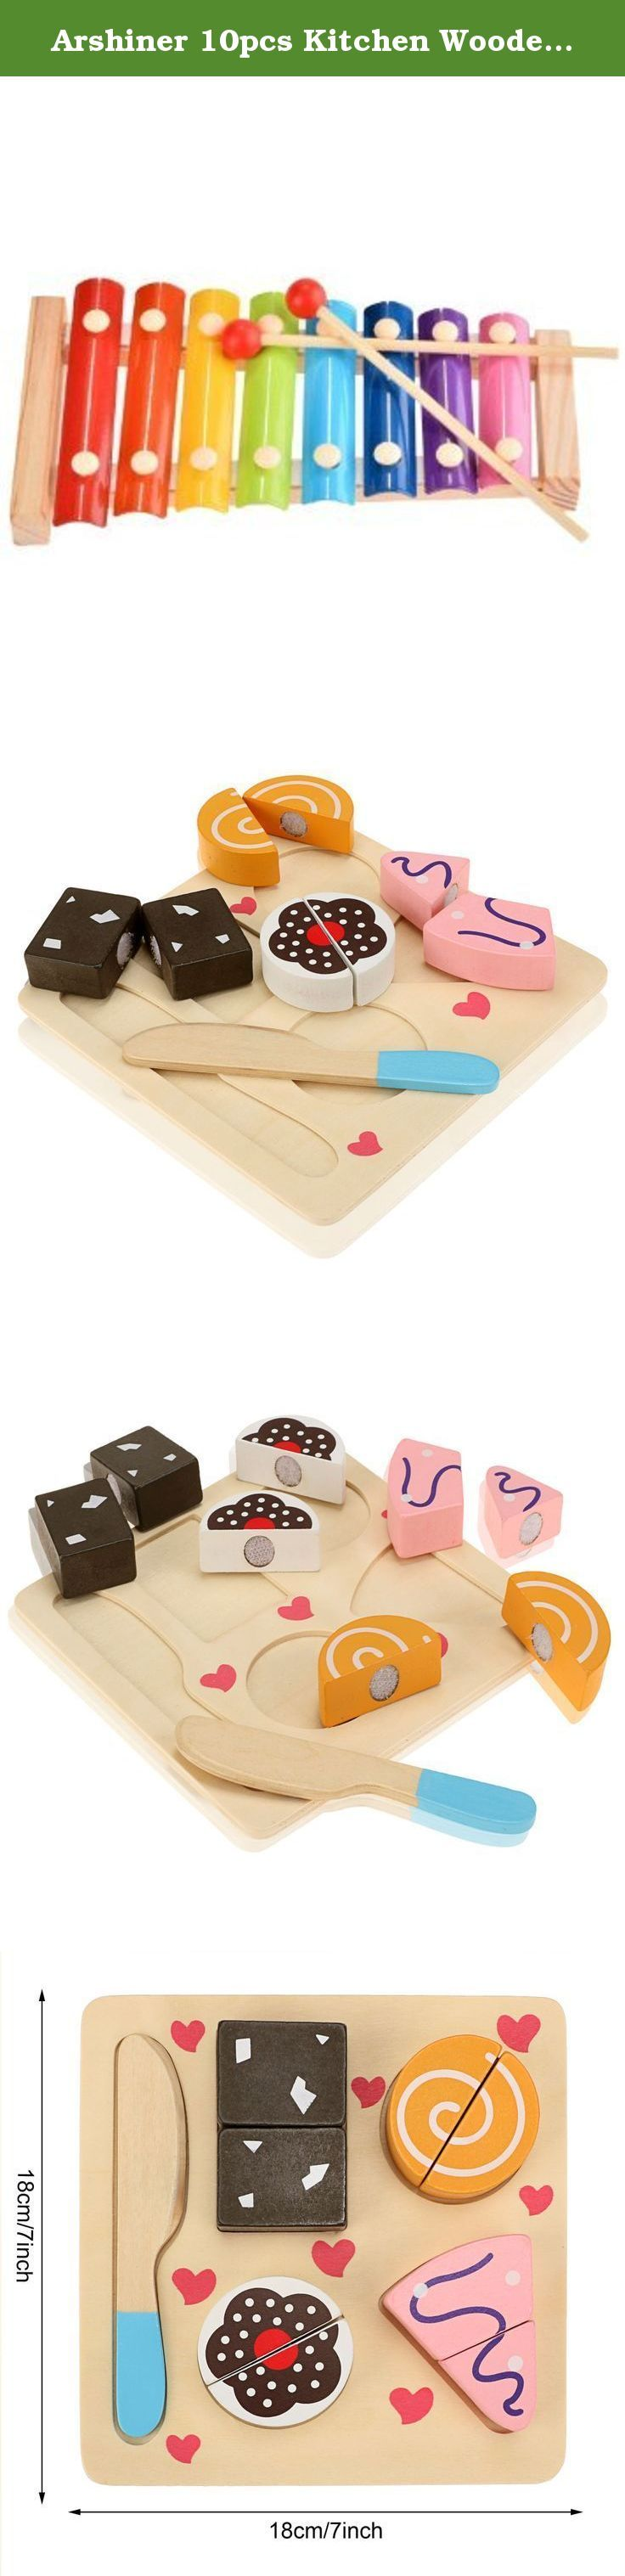 Arshiner 10pcs Kitchen Wooden Pretend Role Play Set Cutting Food for Kids. 100% Brand New. Material: Wood Color: Multicolor (Delivery at Random) Board Size (L x W): 18 x 18cm/7 x 7inch (Approx) Type: Cutter Toy Department Name: BabyPackage Content: 1 x Wood Toy Set Shape: Geometric shapes Quantity: 10pcs, Including 1 board, 1 Cutter and 8 slices Adding great fun for your baby Educational Development Cutter Toy, for play and learning Note: Due to the difference between different monitors…